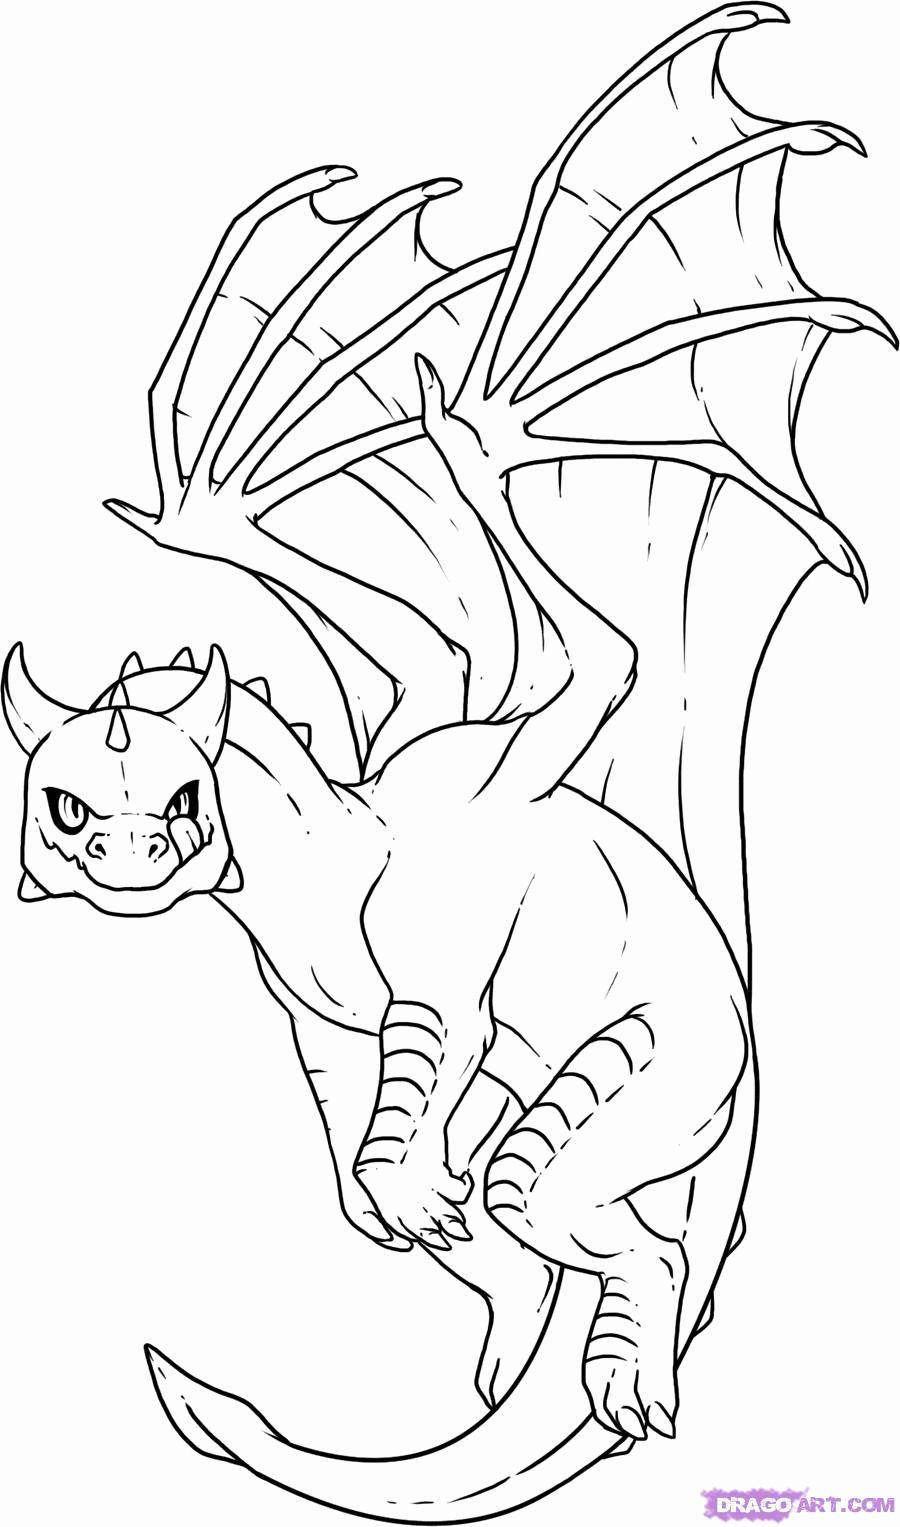 Wyvern Dragon Coloring Pages For Kids In 2020 Dragon Coloring Page Dinosaur Coloring Pages Giraffe Coloring Pages